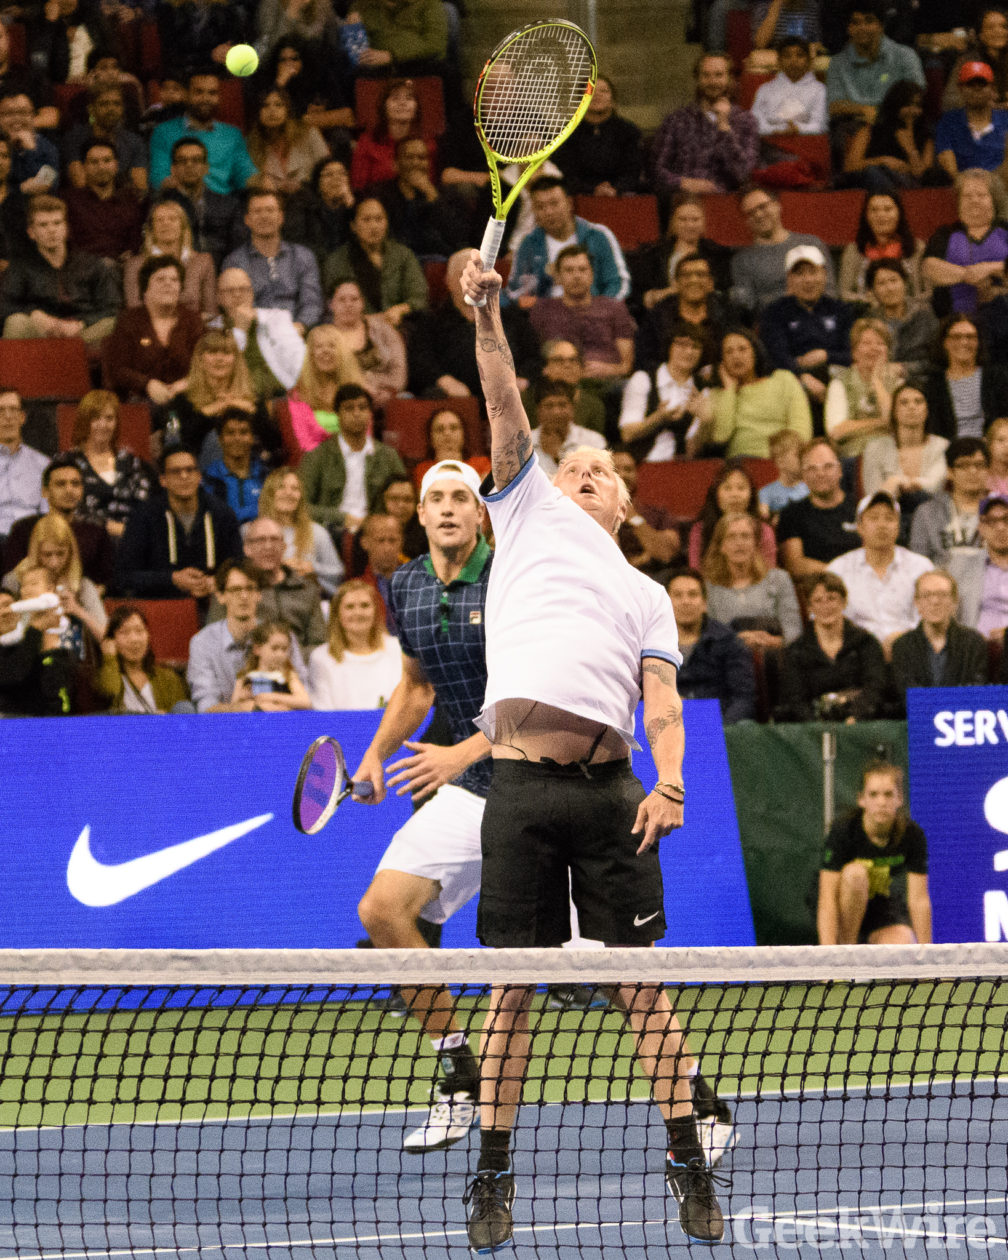 4dcf3240a Gates and Federer, who share a passion for not only tennis but also  philanthropy, teamed up for the celebrity doubles match against Isner and  McCready, ...